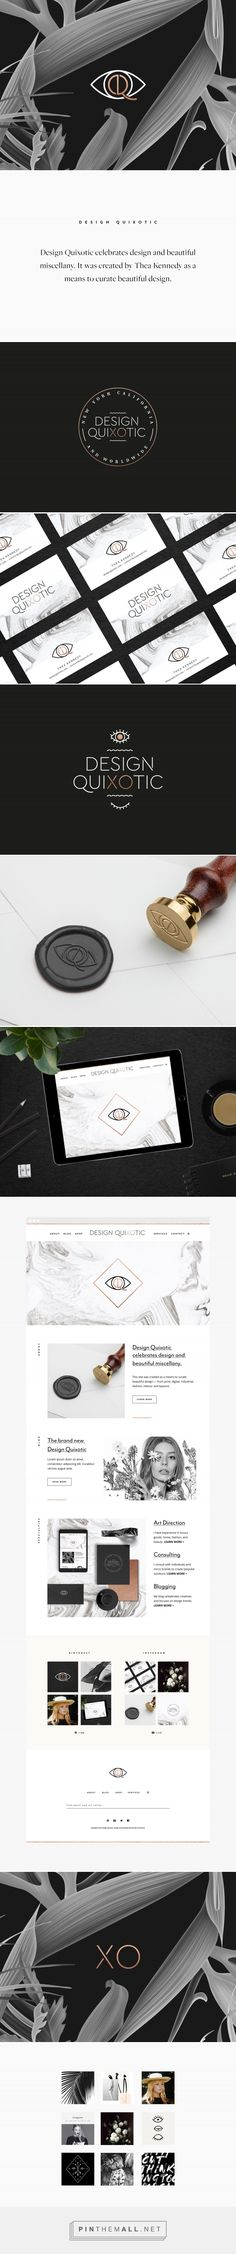 Design Quixotic Branding by We Are Branch | Fivestar Branding Agency – Design and Branding Agency & Curated Inspiration Gallery